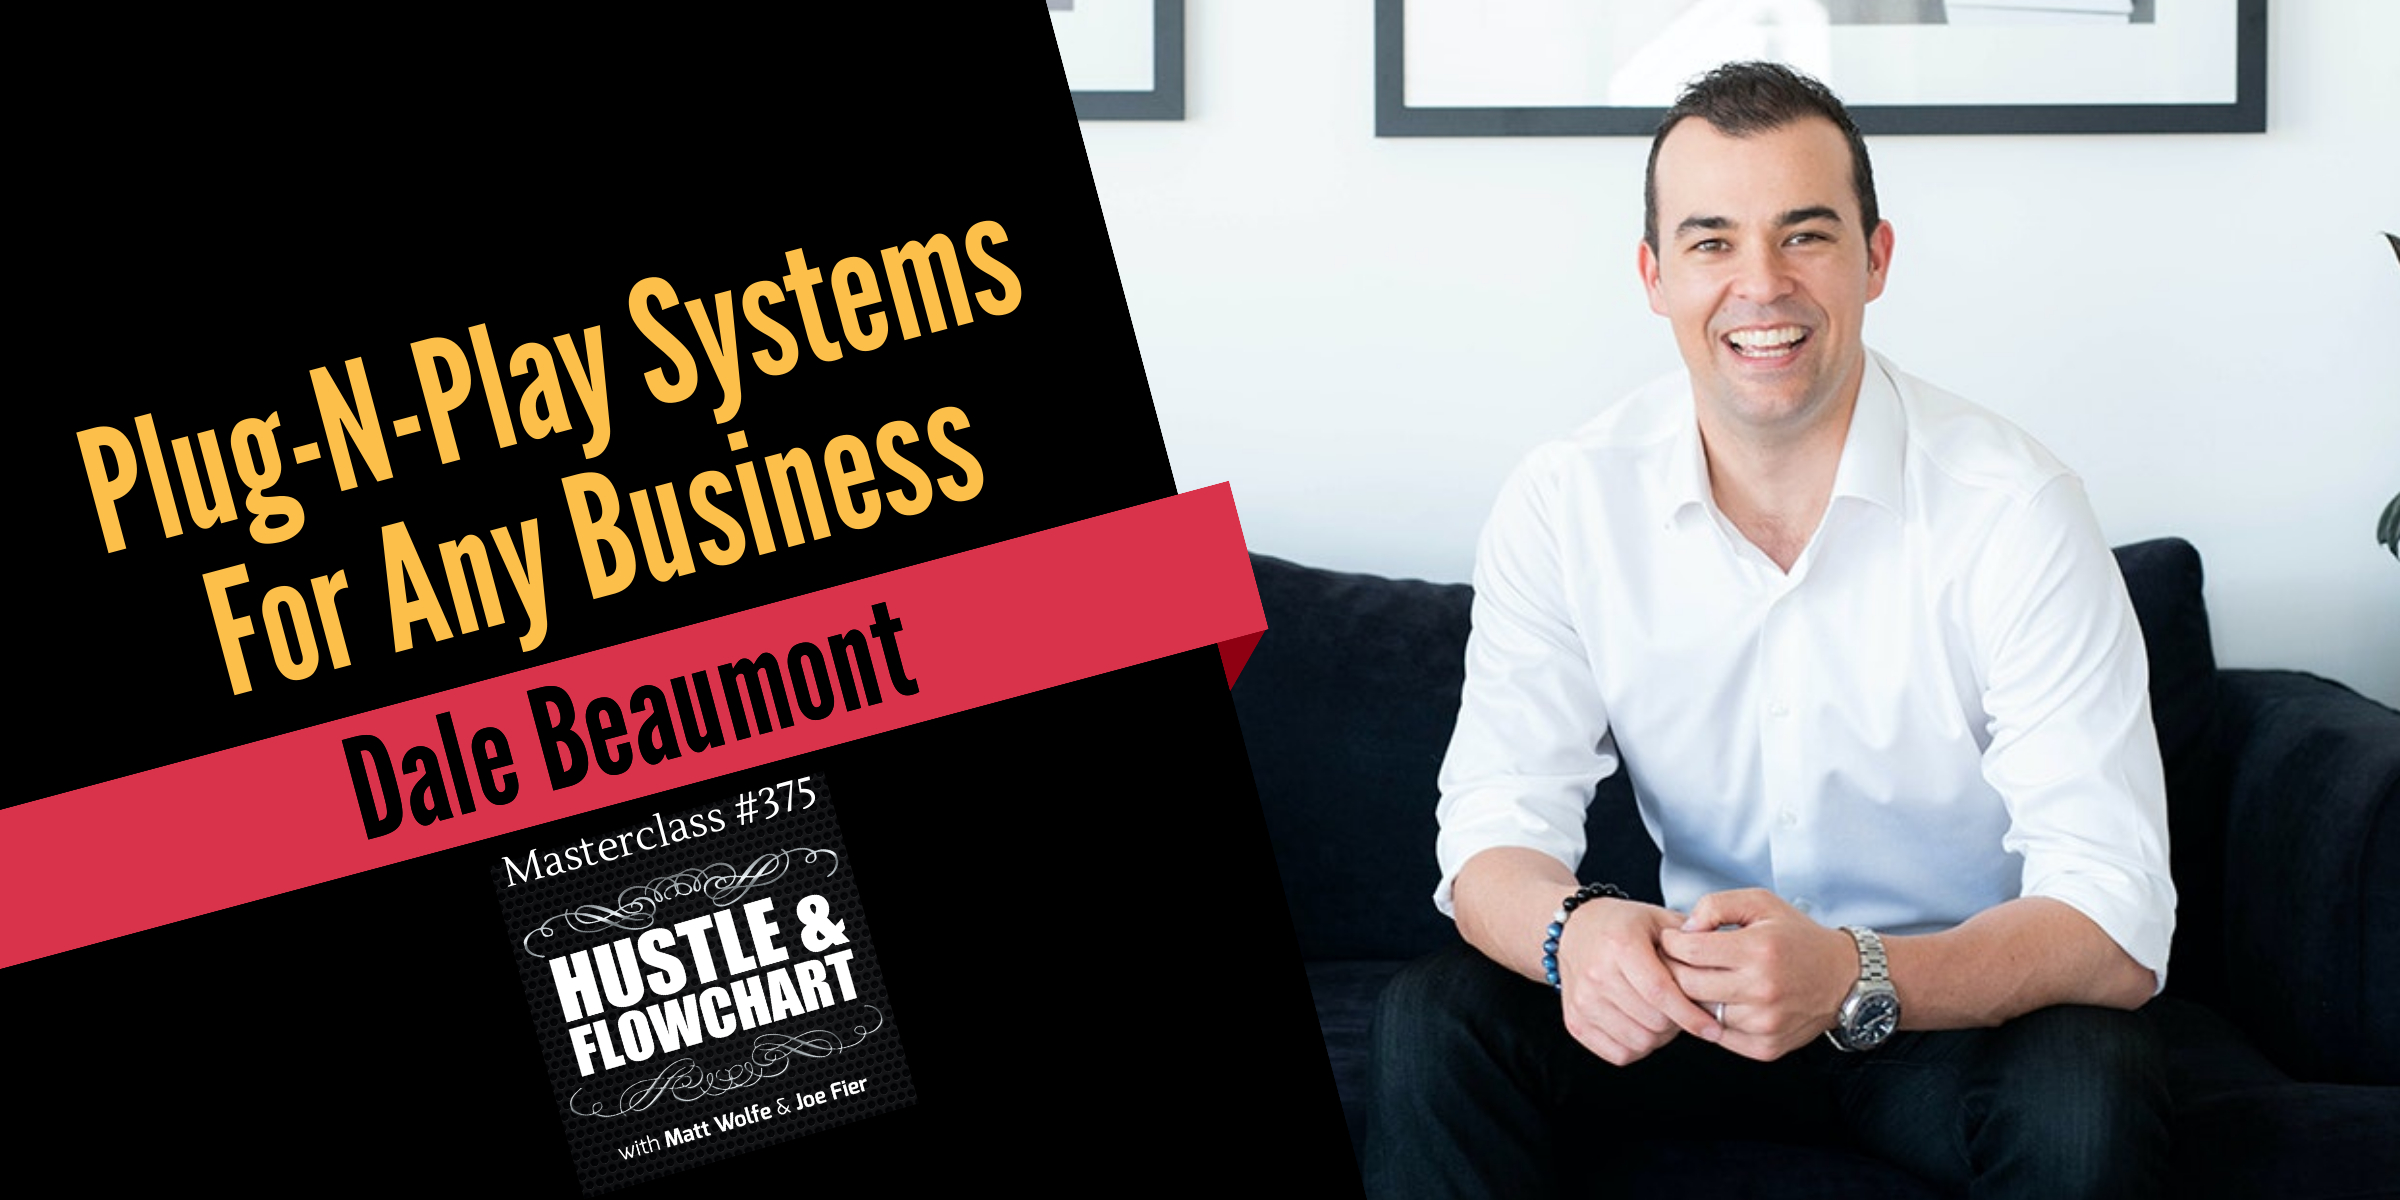 Dale Beaumont - Plug-N-Play Systems For Any Business